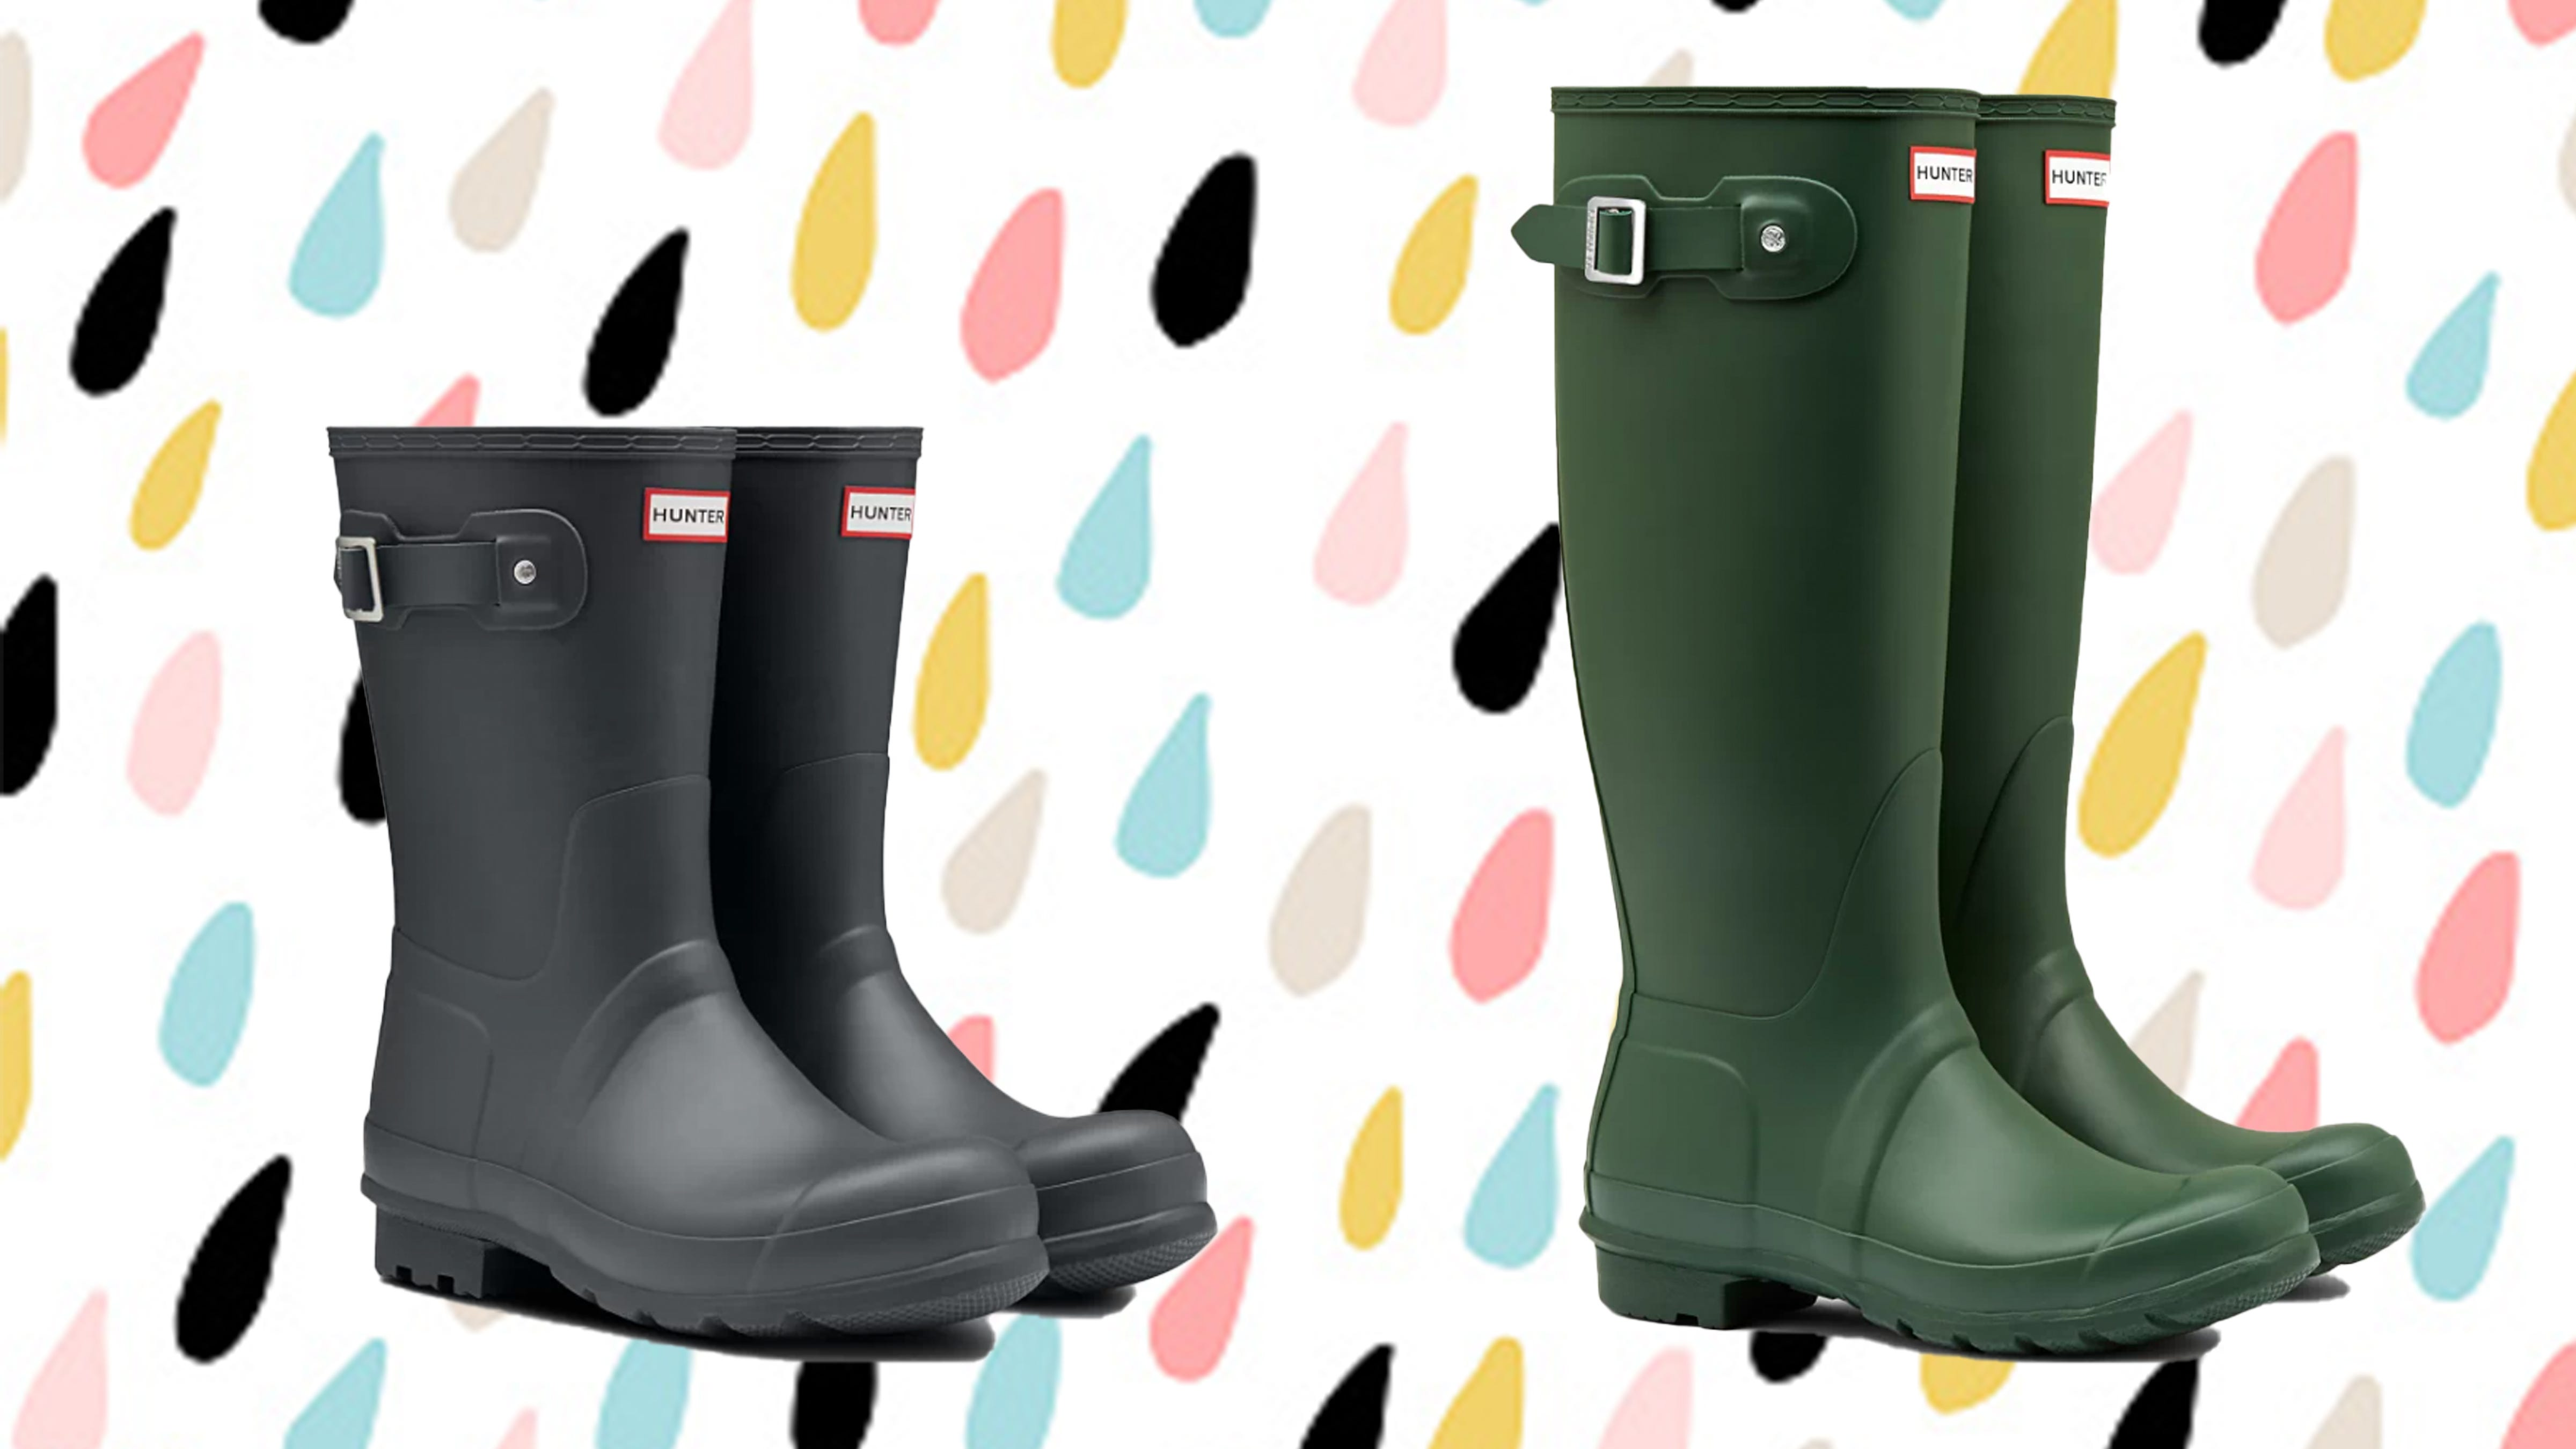 Hunter rain boots are on sale